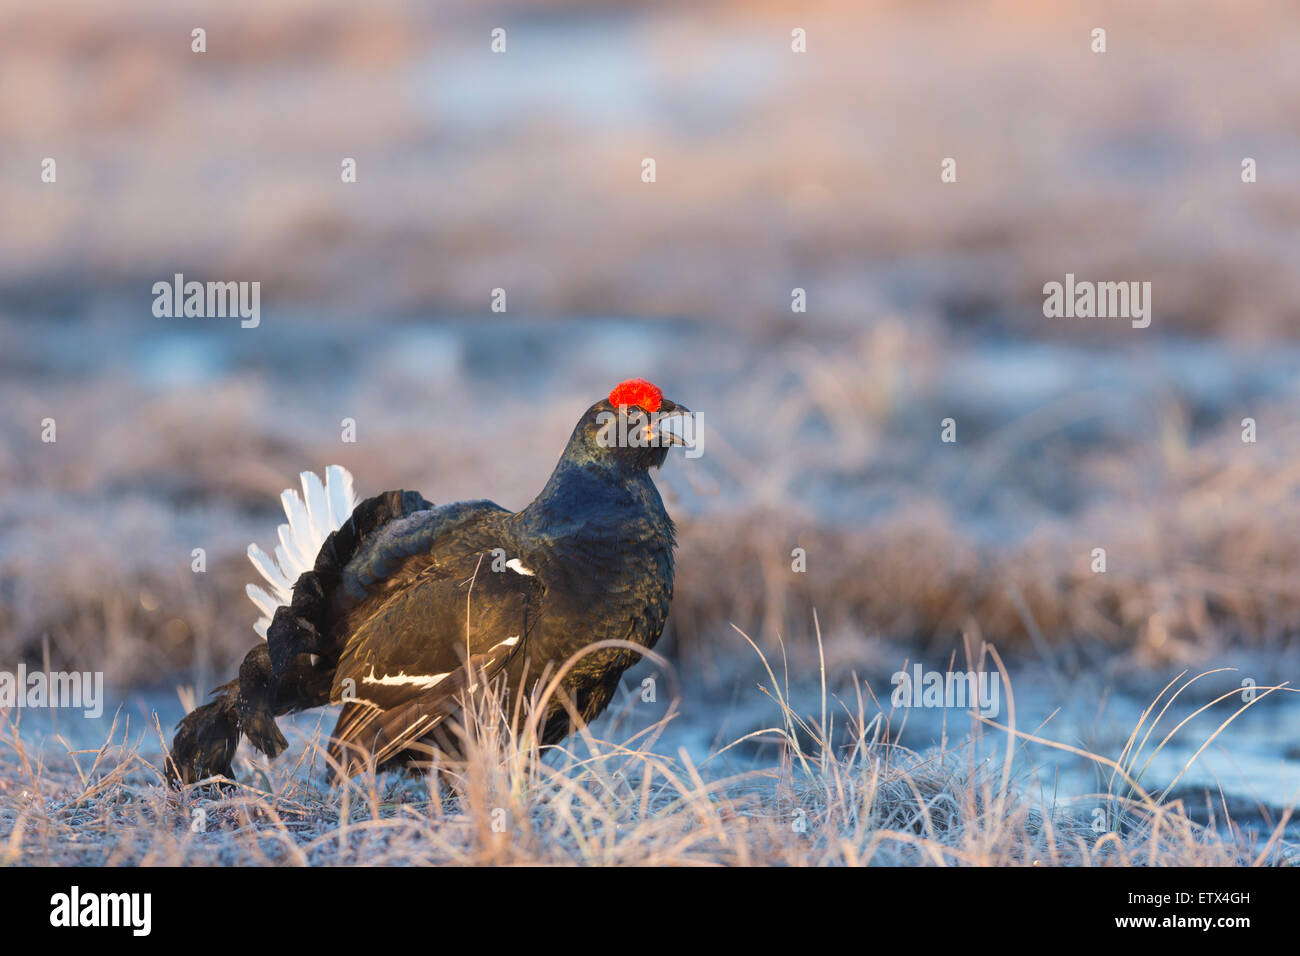 A close up photo of Black grouse, Lyrurus tetrix, blackcock courtship display in Boden, norrbotten, Sweden - Stock Image